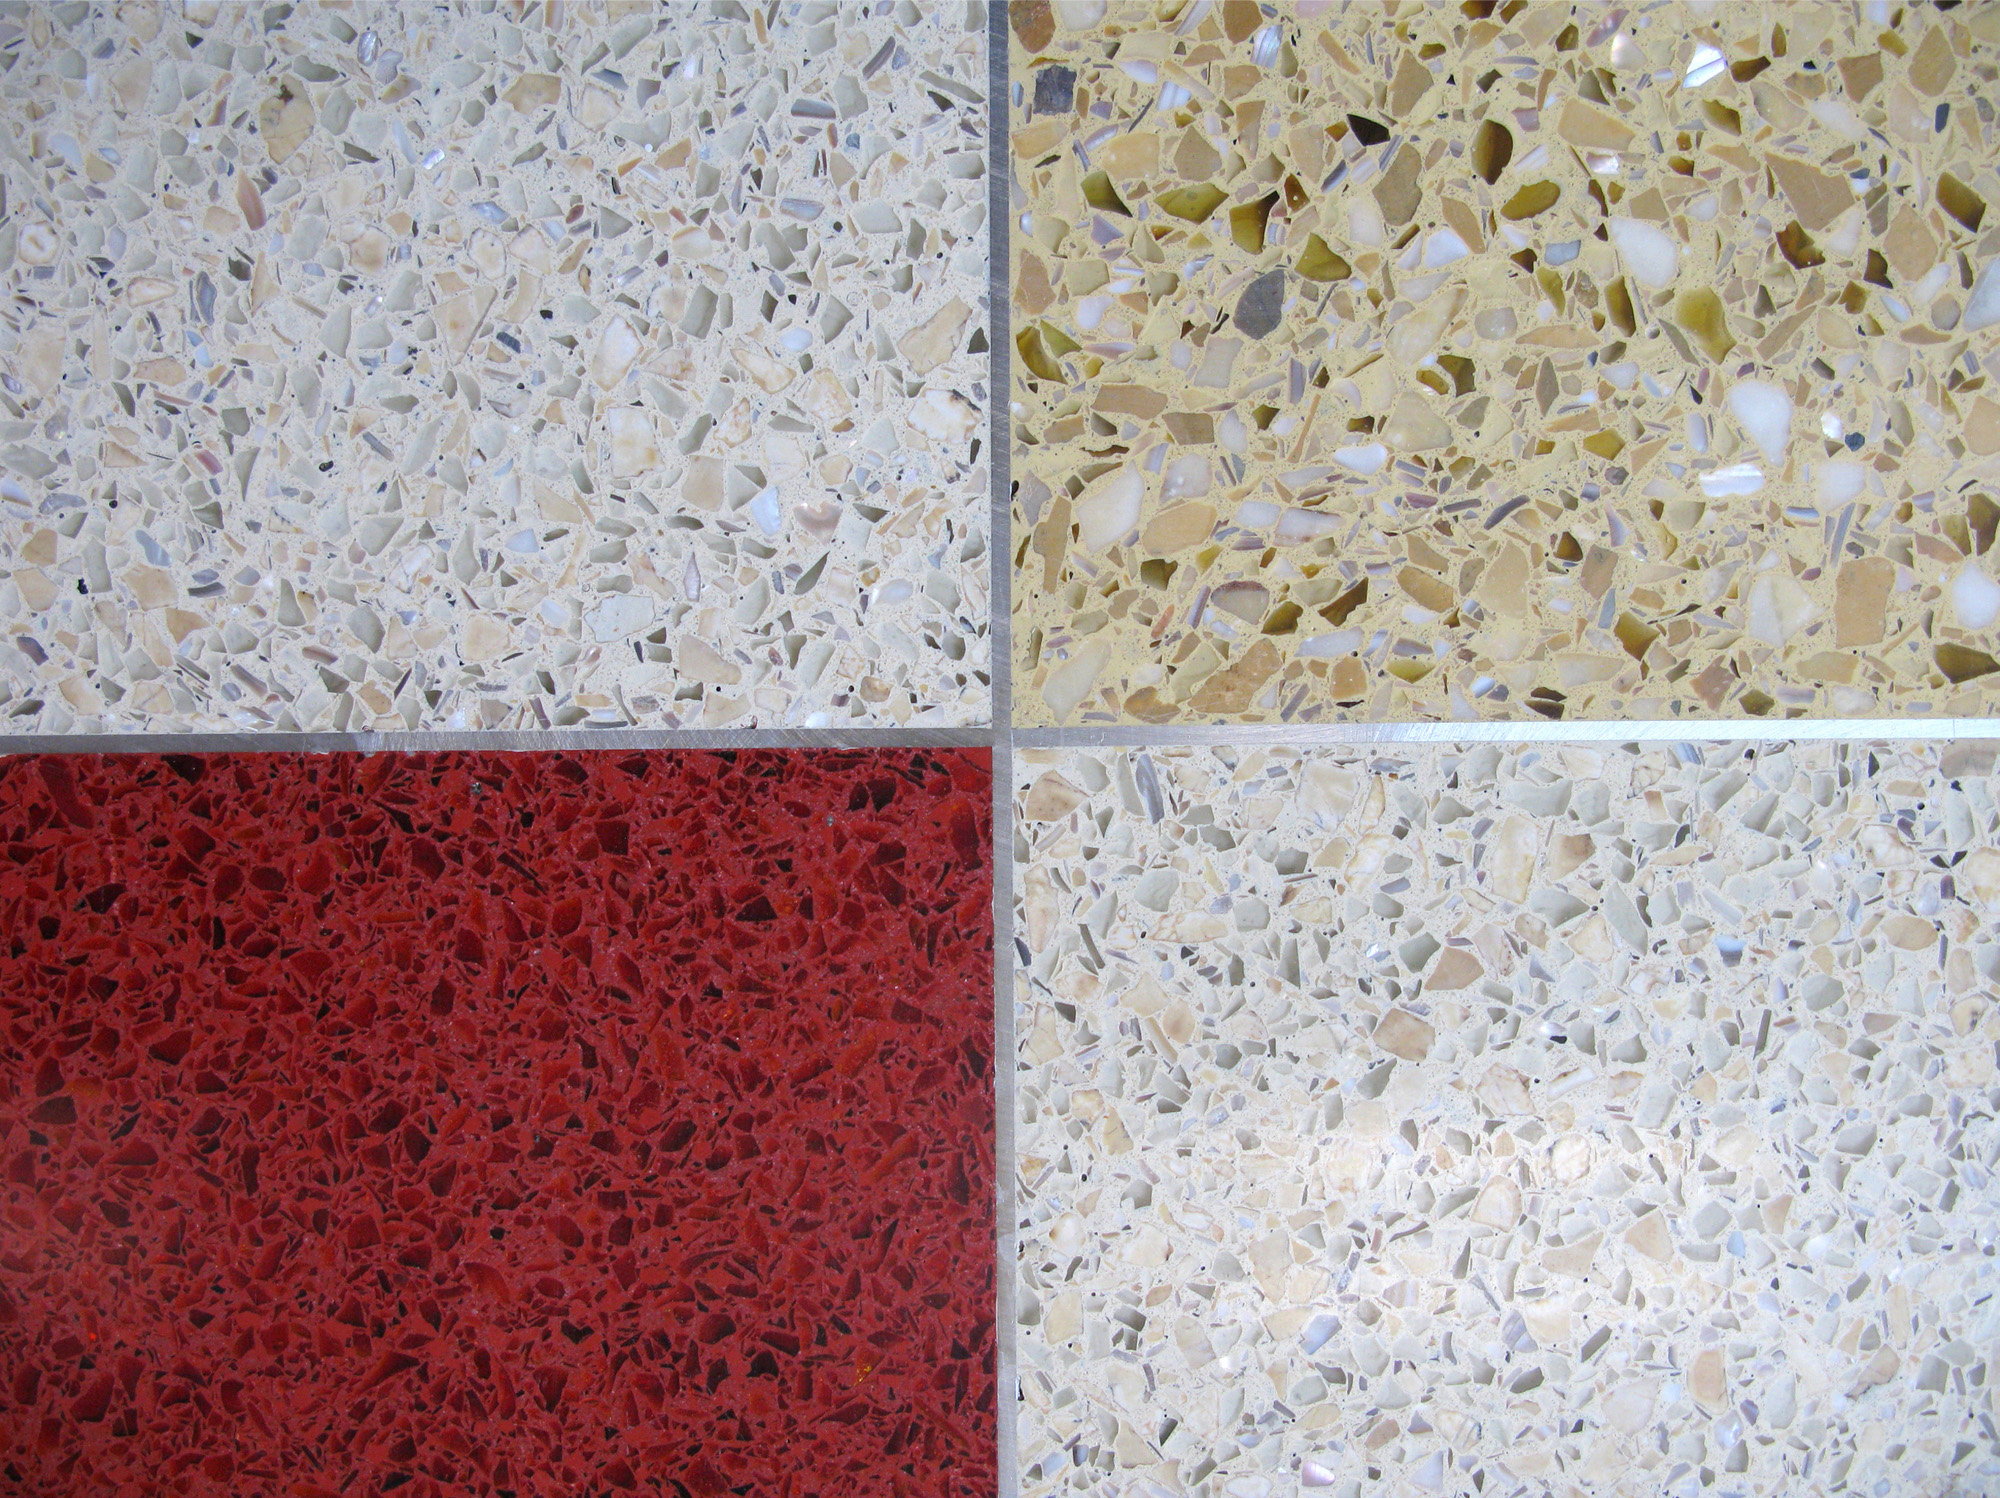 Epoxy or Cement: What's the difference?